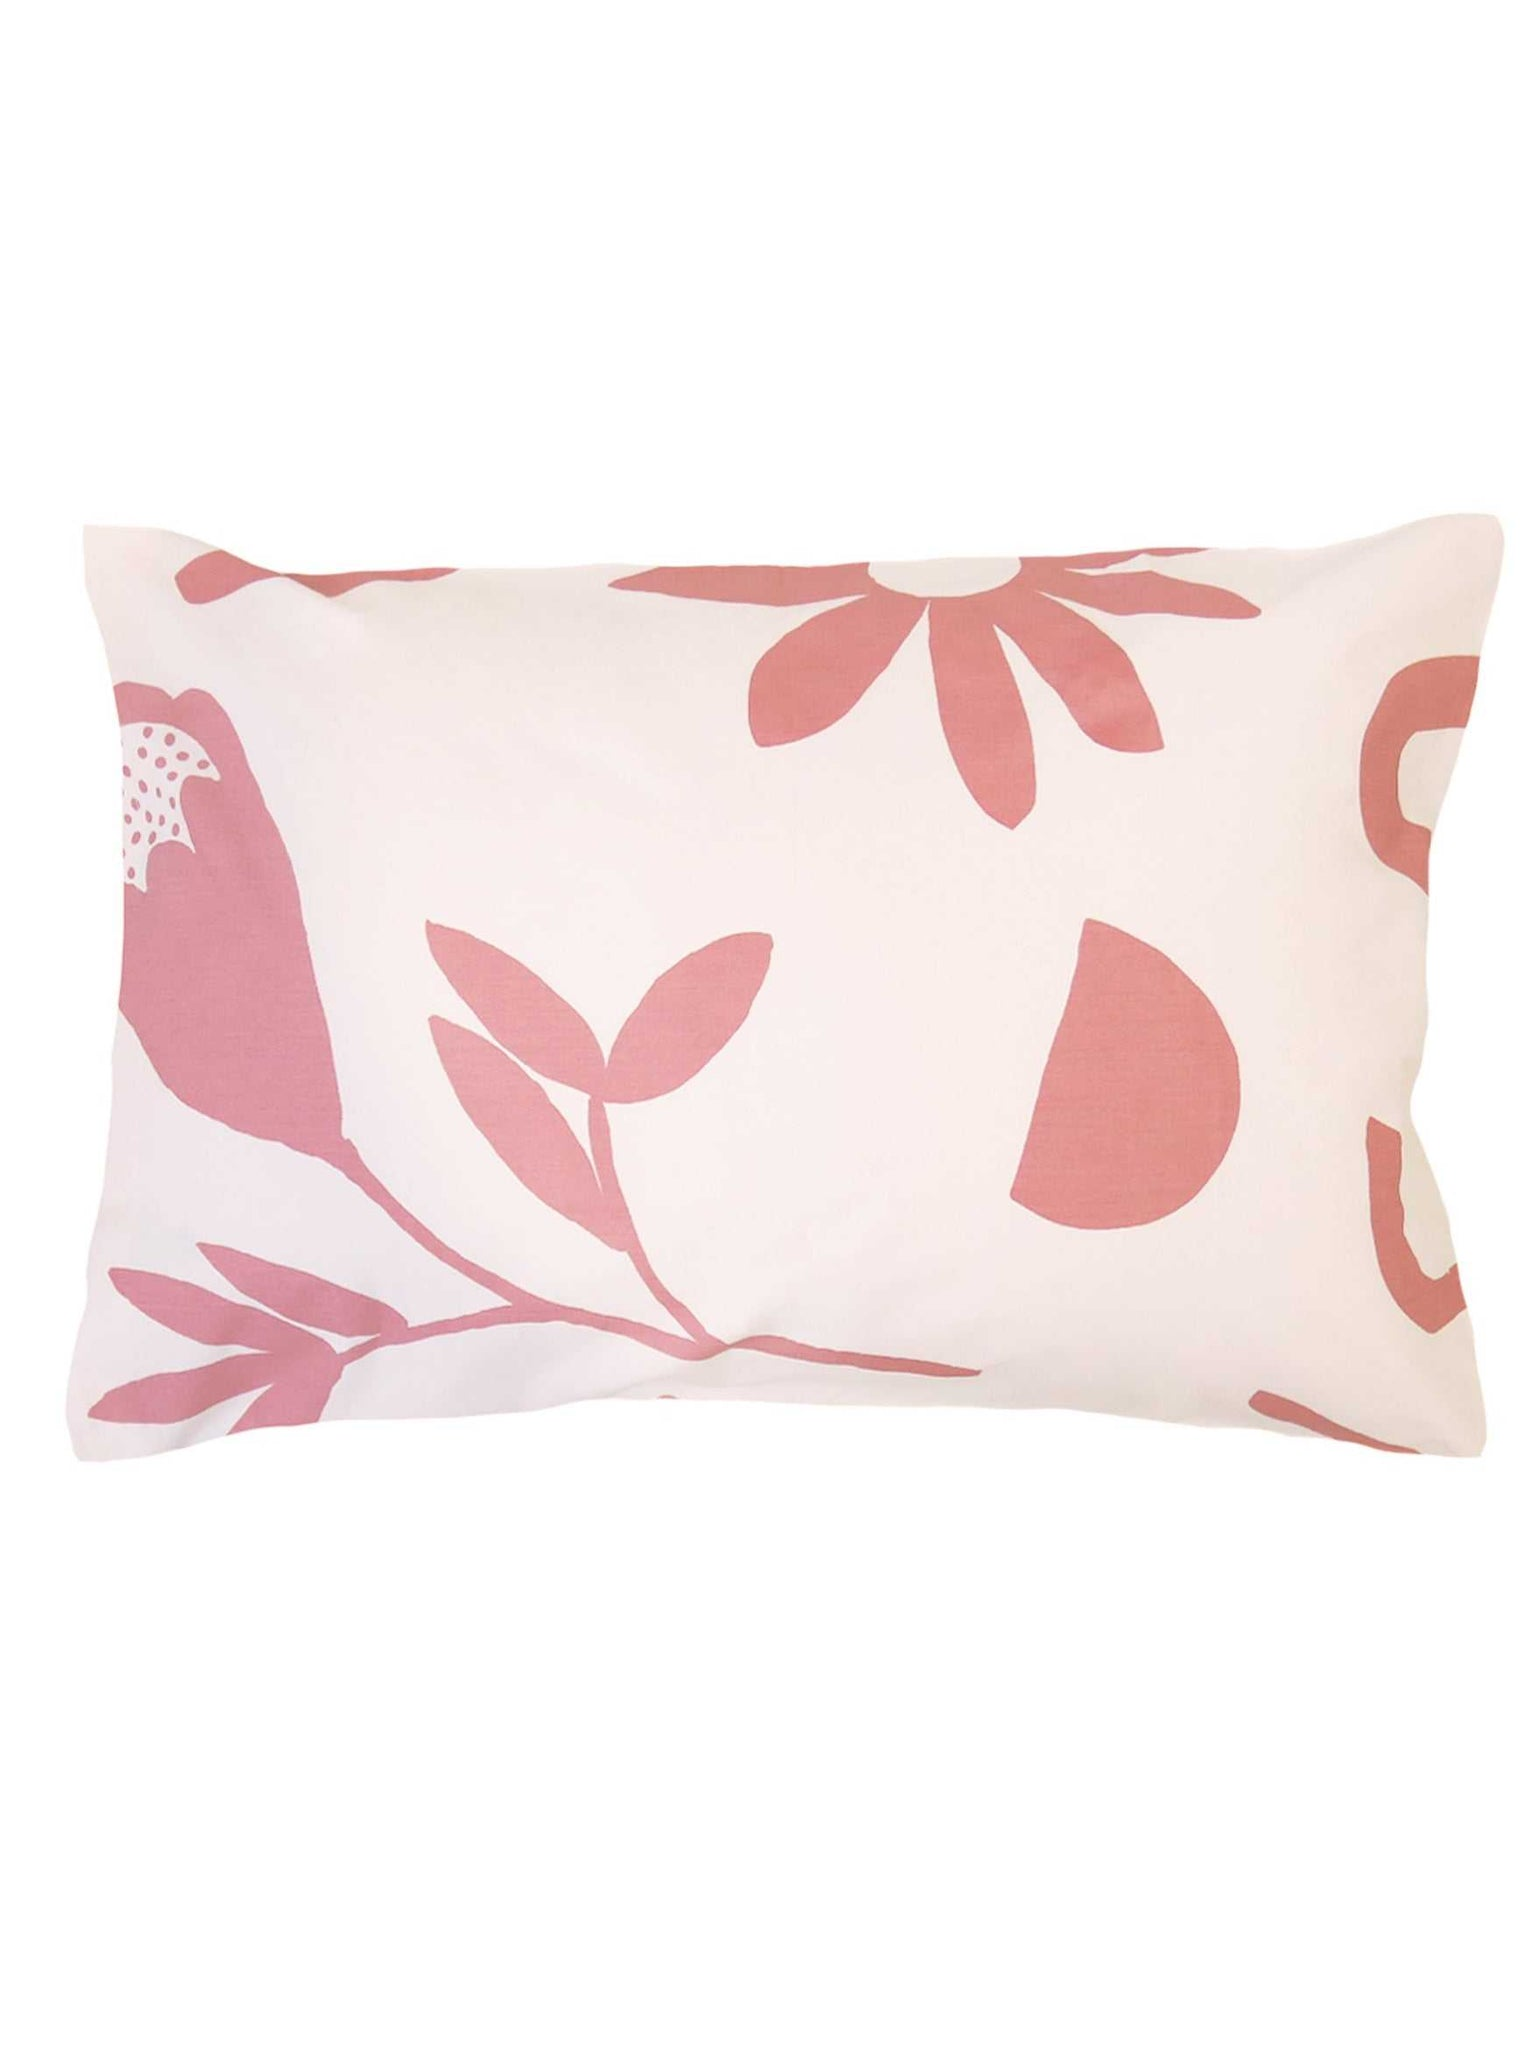 Floral Dreams Standard Pillowcase Set Ink & Musk  by Mosey Me